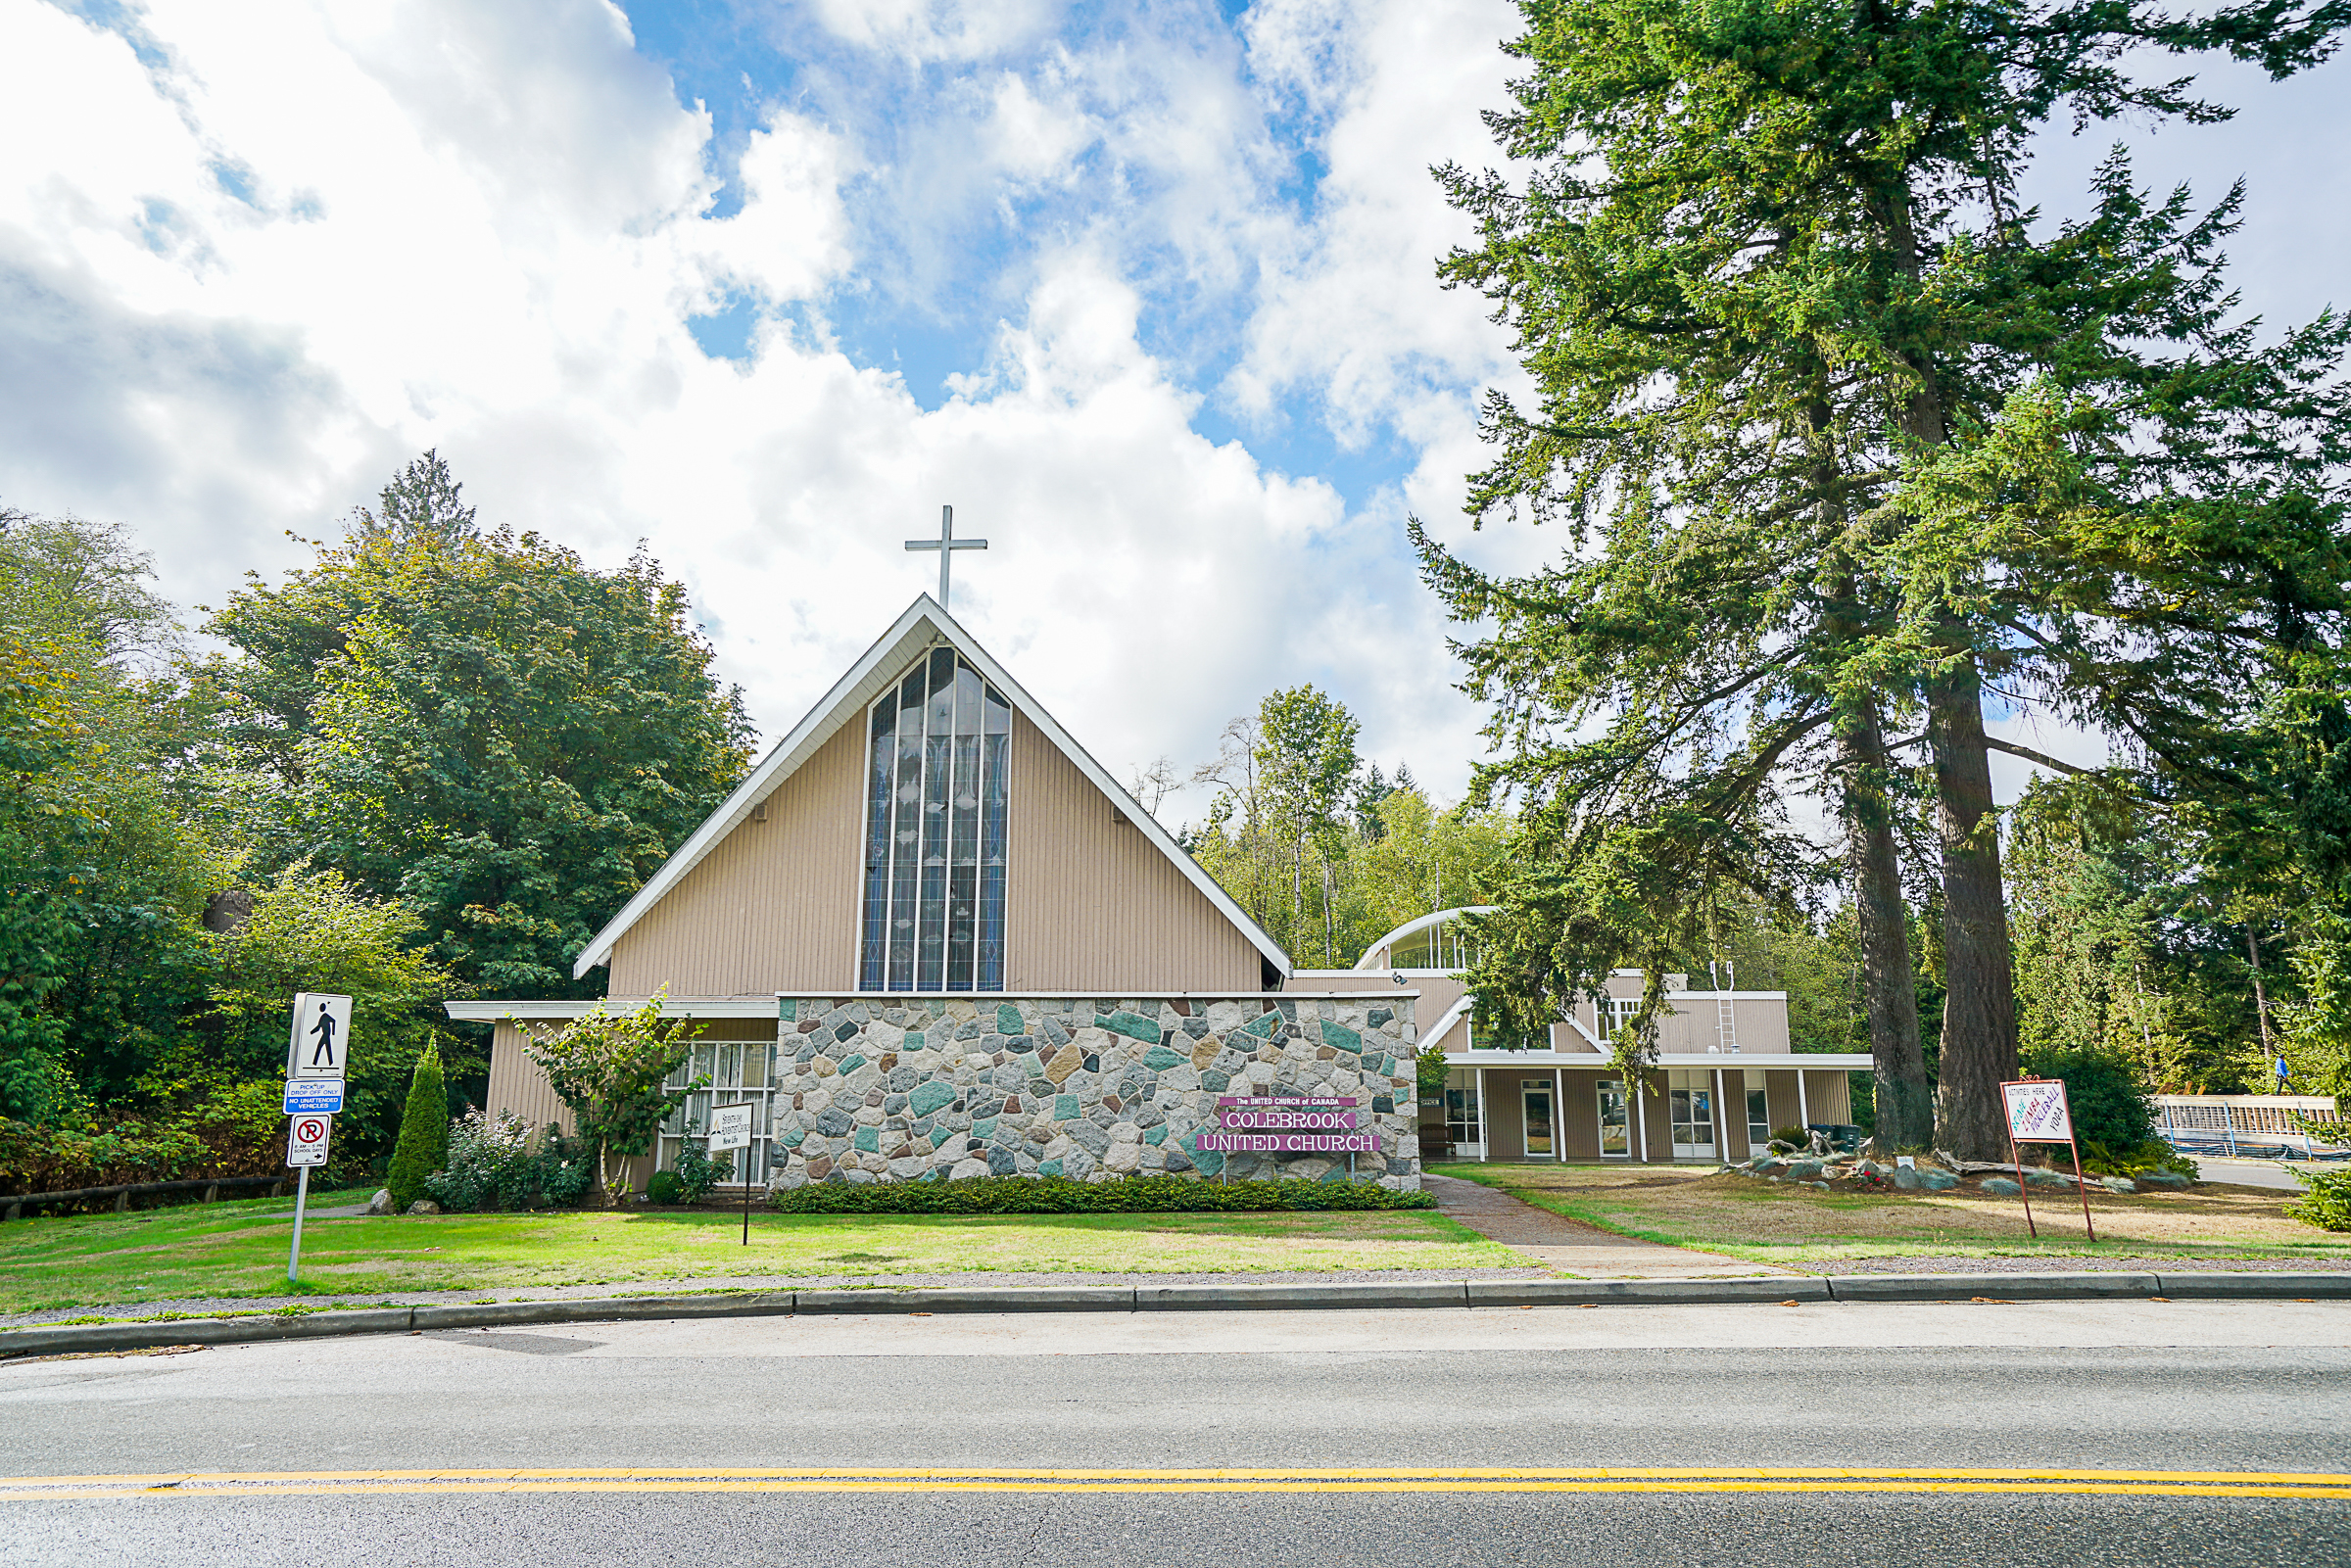 Colebrook United Church